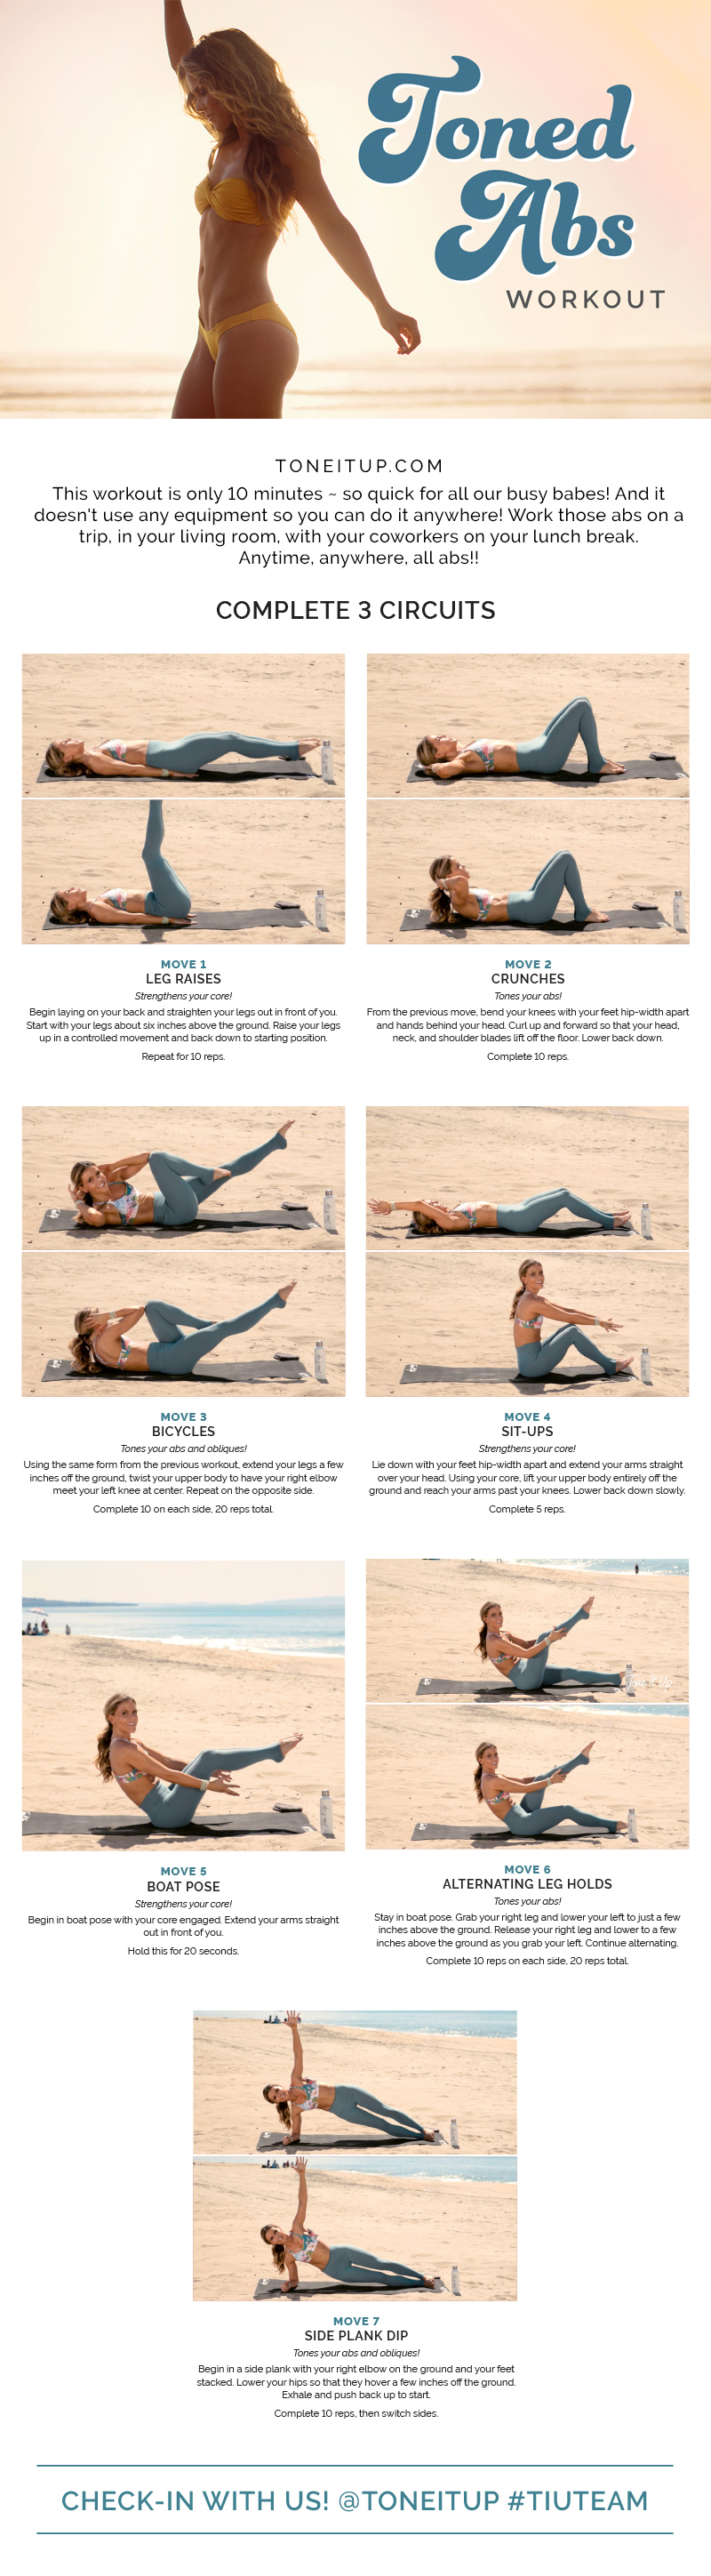 10-Minute Route to a Mean Machine Body - Infographic